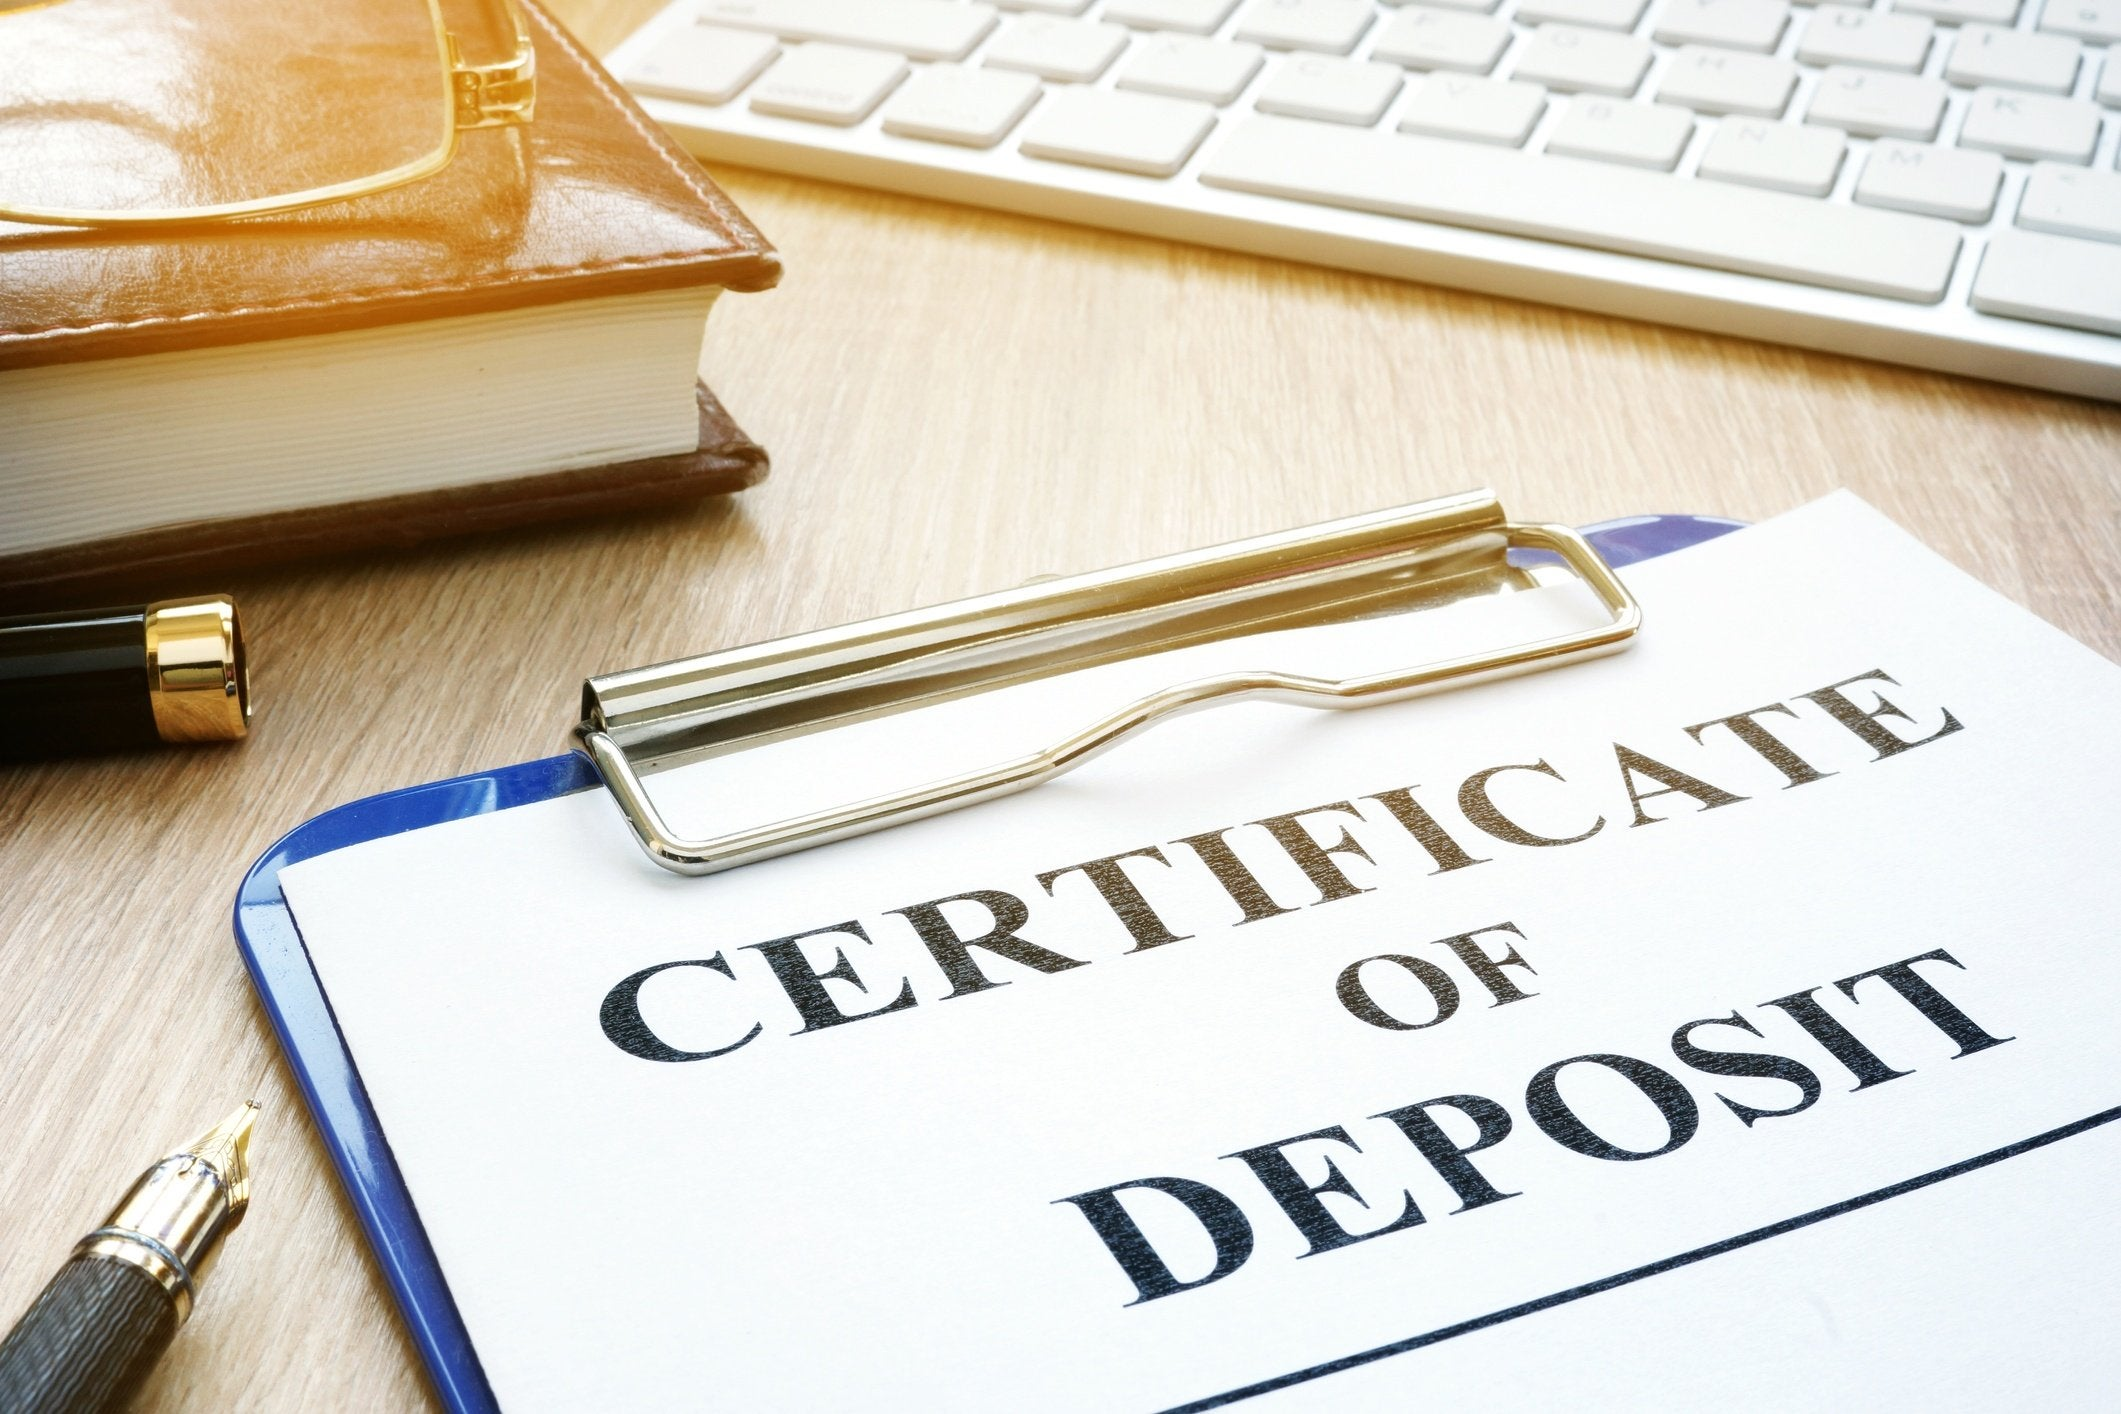 What is a Certificate of Deposit and how does it work?